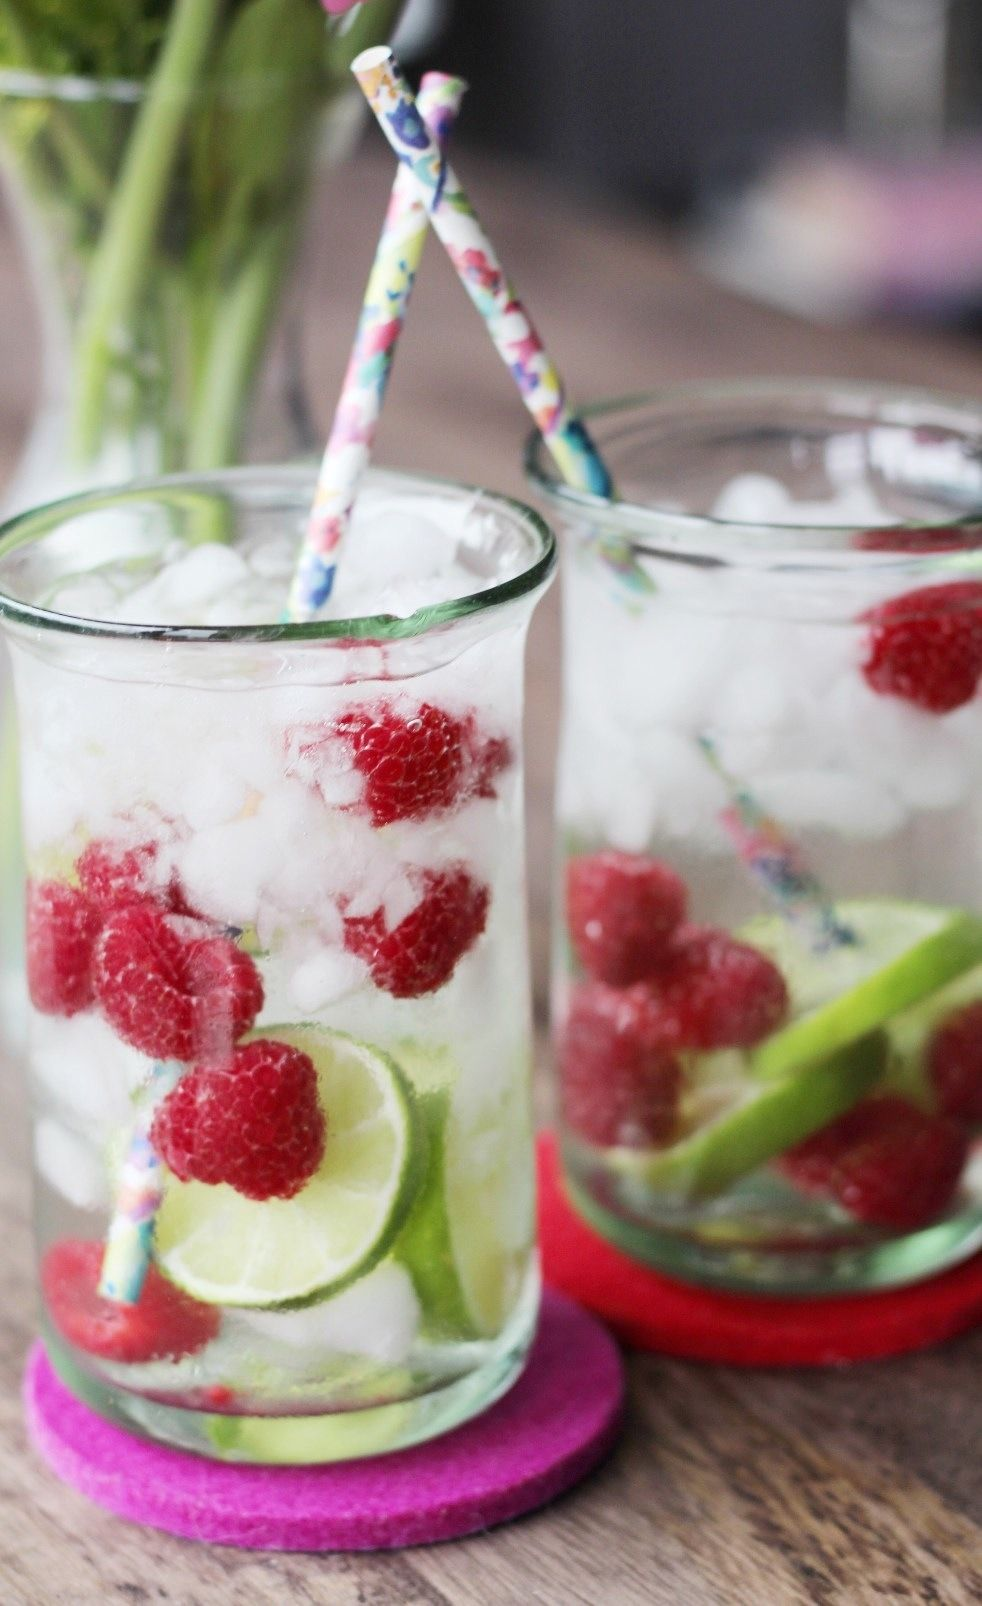 17 Fruit Infused Waters To Replace Your Daily Soda Habit With - Soda Wasser